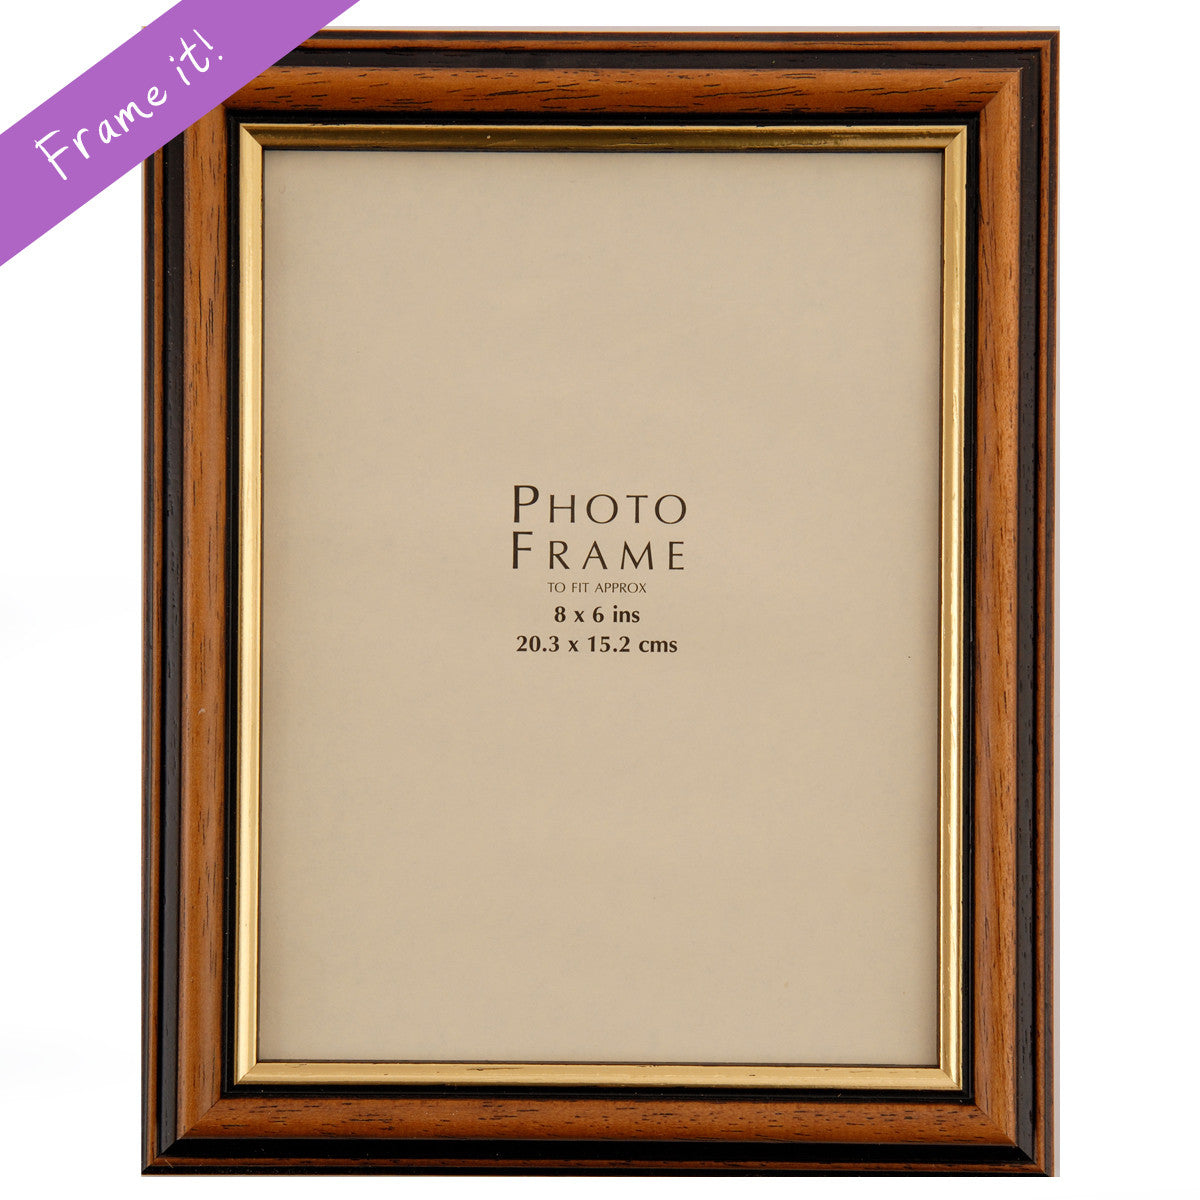 Mahogany with Gold Trim Frame